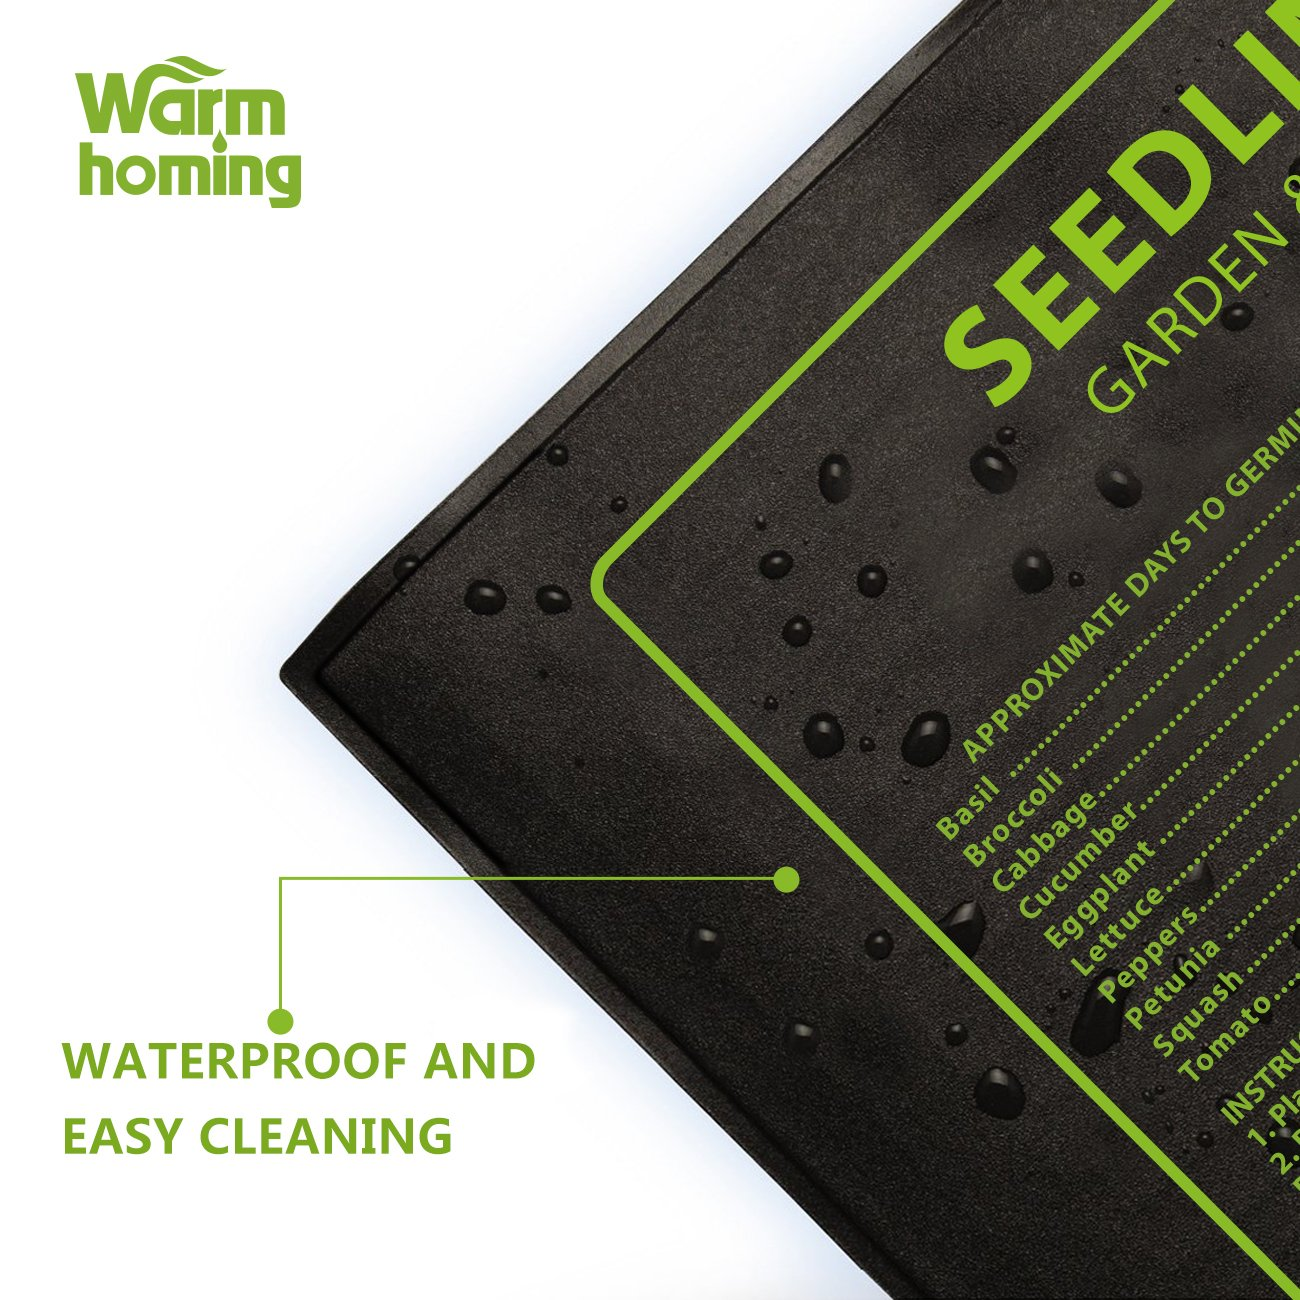 Seedling Heat Mat, Warmhoming Seed Propagating Heat Mat for Seedling, Durable Waterproof Warm Hydroponic Heating Pads (18.5'' x 8.5'') by Warmhoming (Image #3)